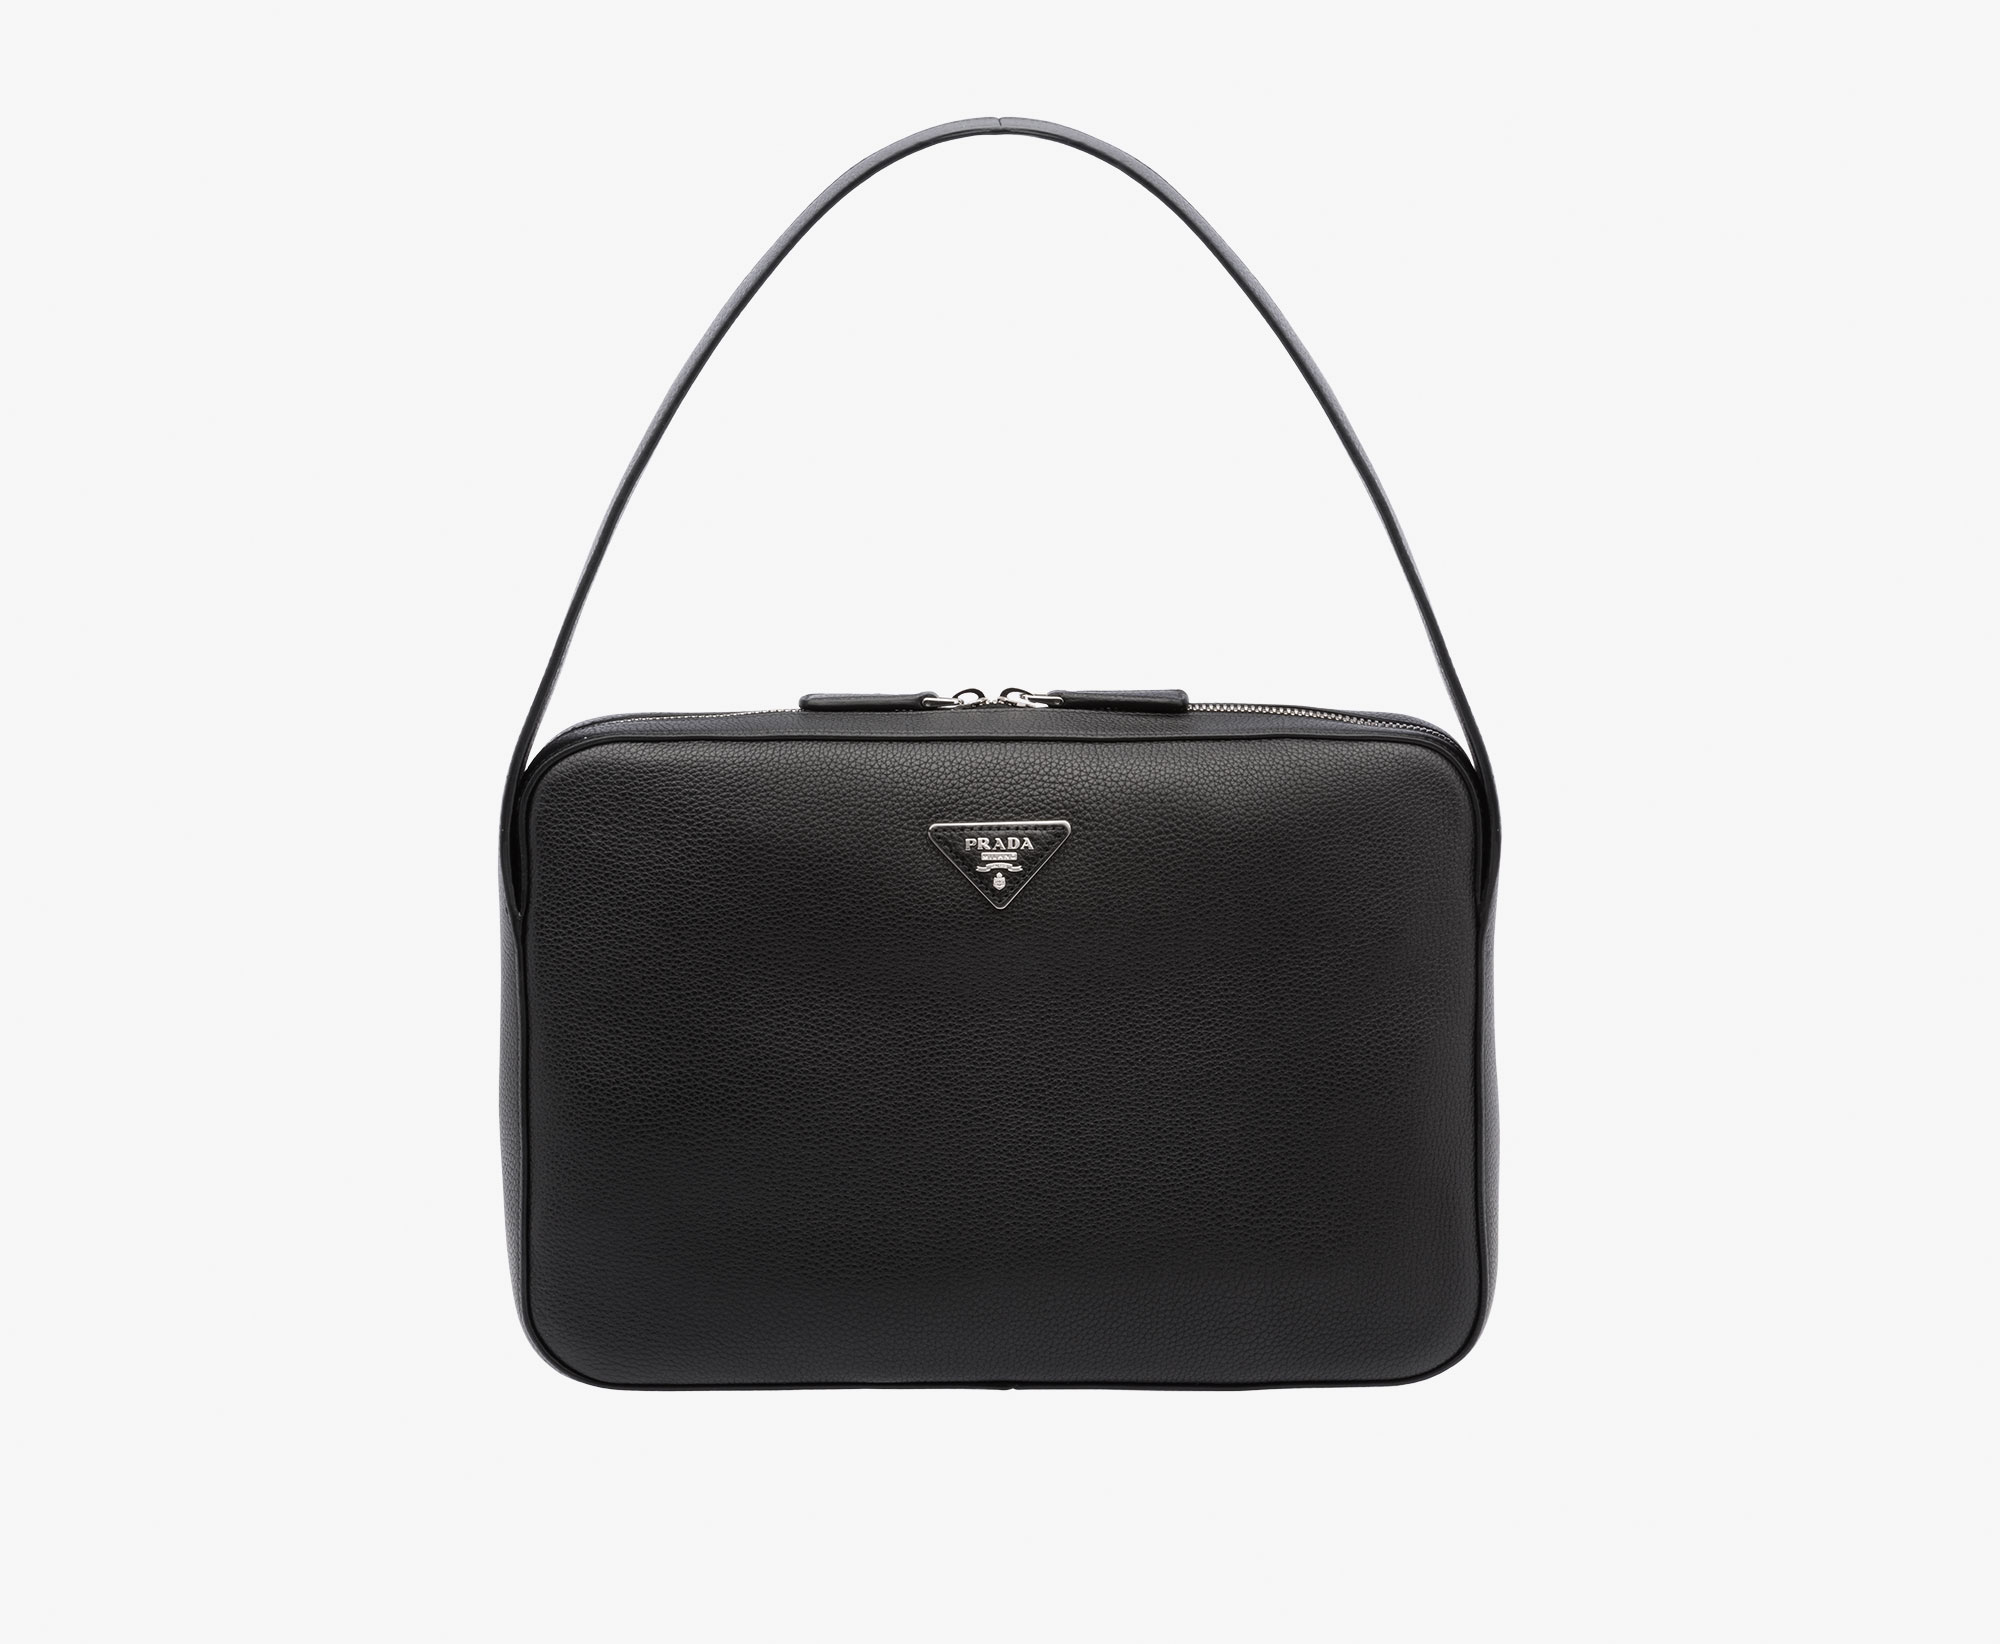 Prada Woman - Shoulder bag - Black